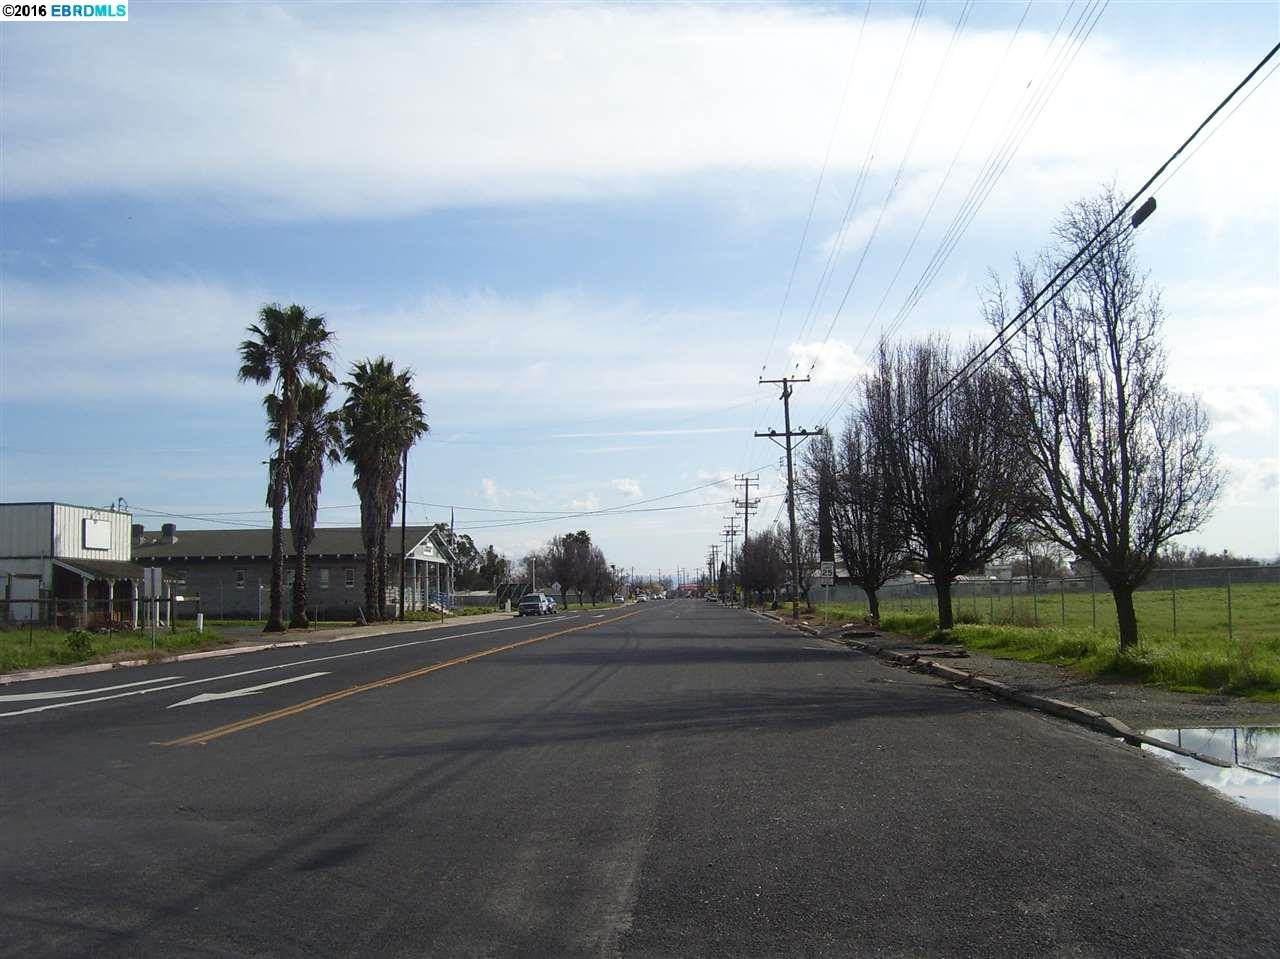 Land for Sale at 6501 BETHEL ISLAND Road Bethel Island, California 94511 United States